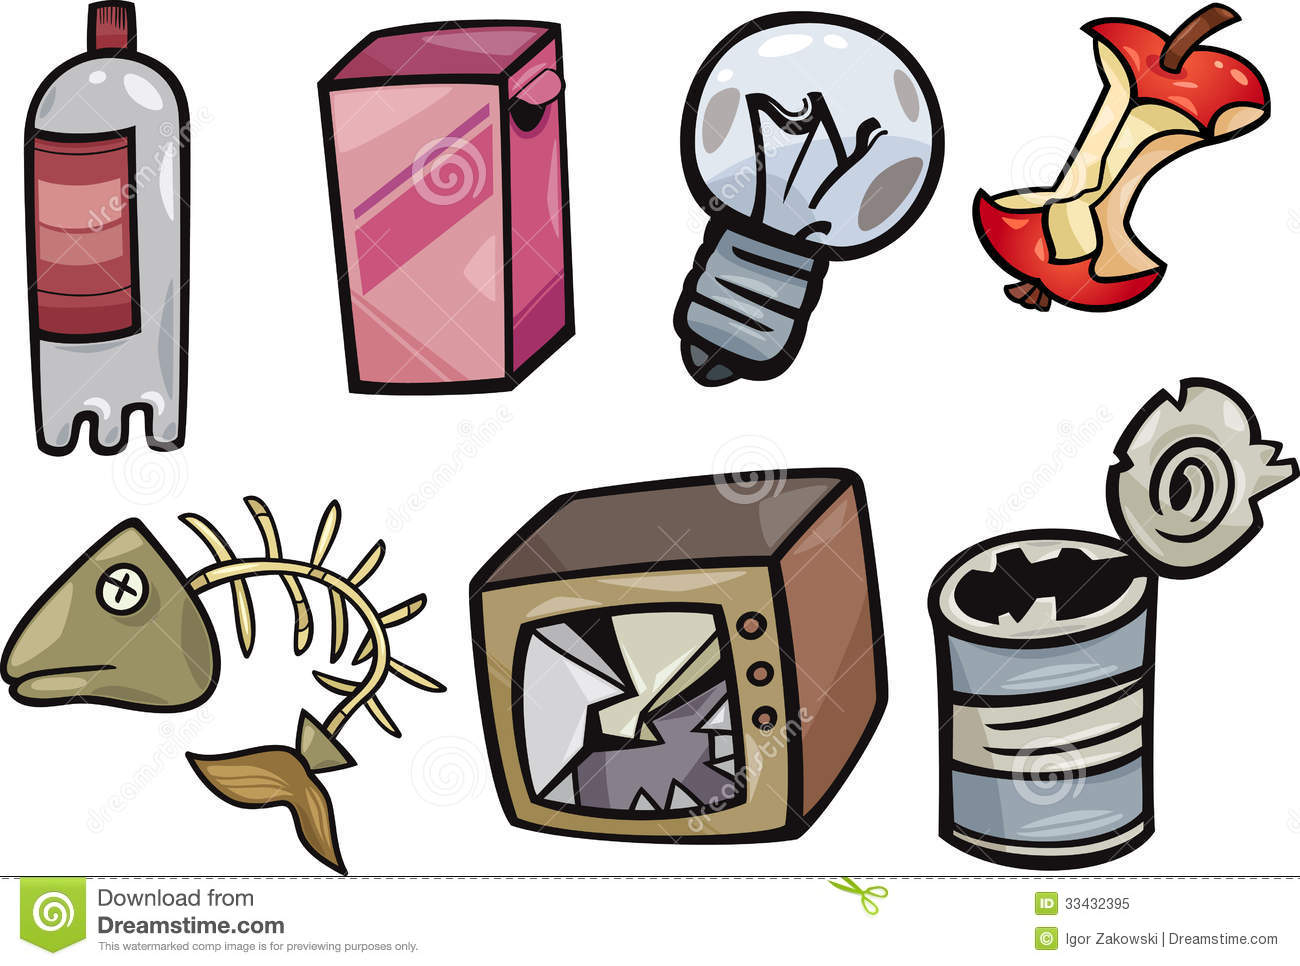 2006 Garbage free clipart.